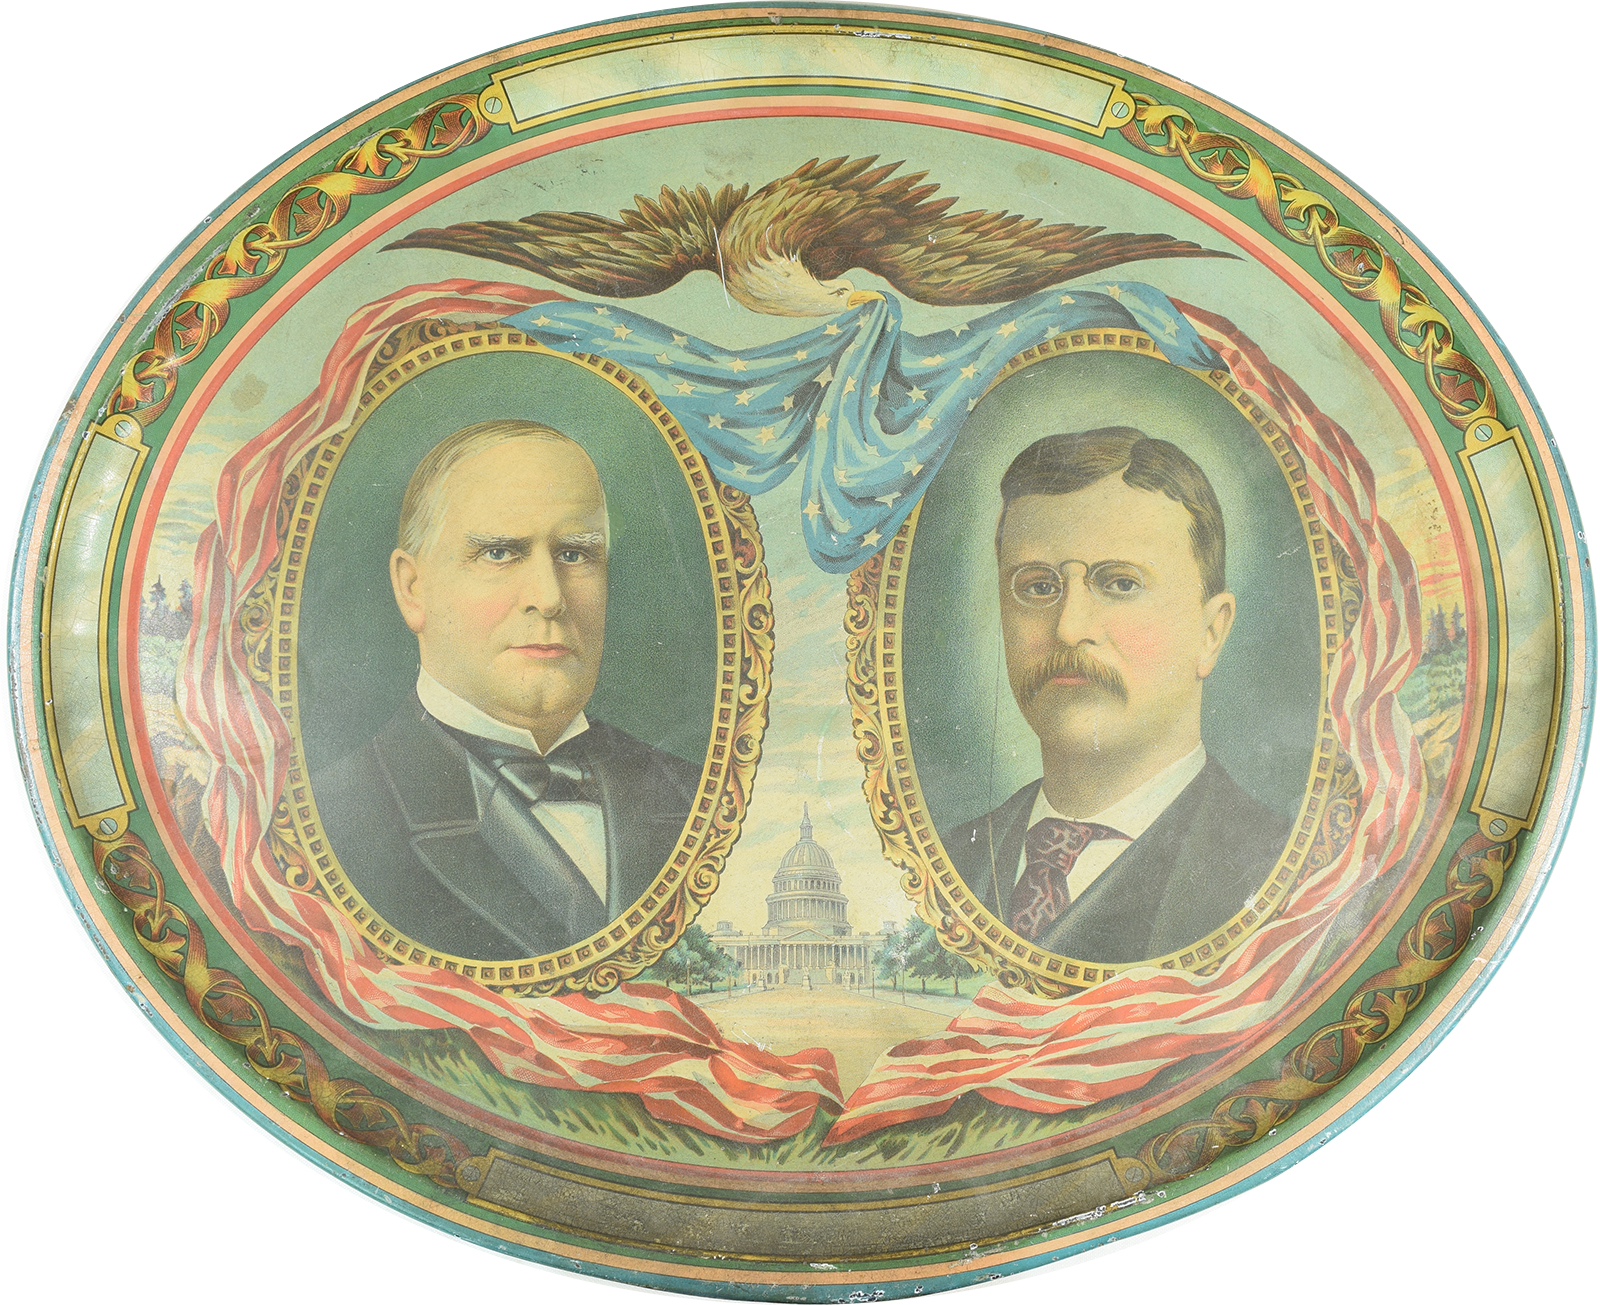 Other Collectibles 1900 SCARCE 16″ OVAL MCKINLEY-ROOSEVELT JUGATE CAMPAIGN TIN TRAY VG+/EXC